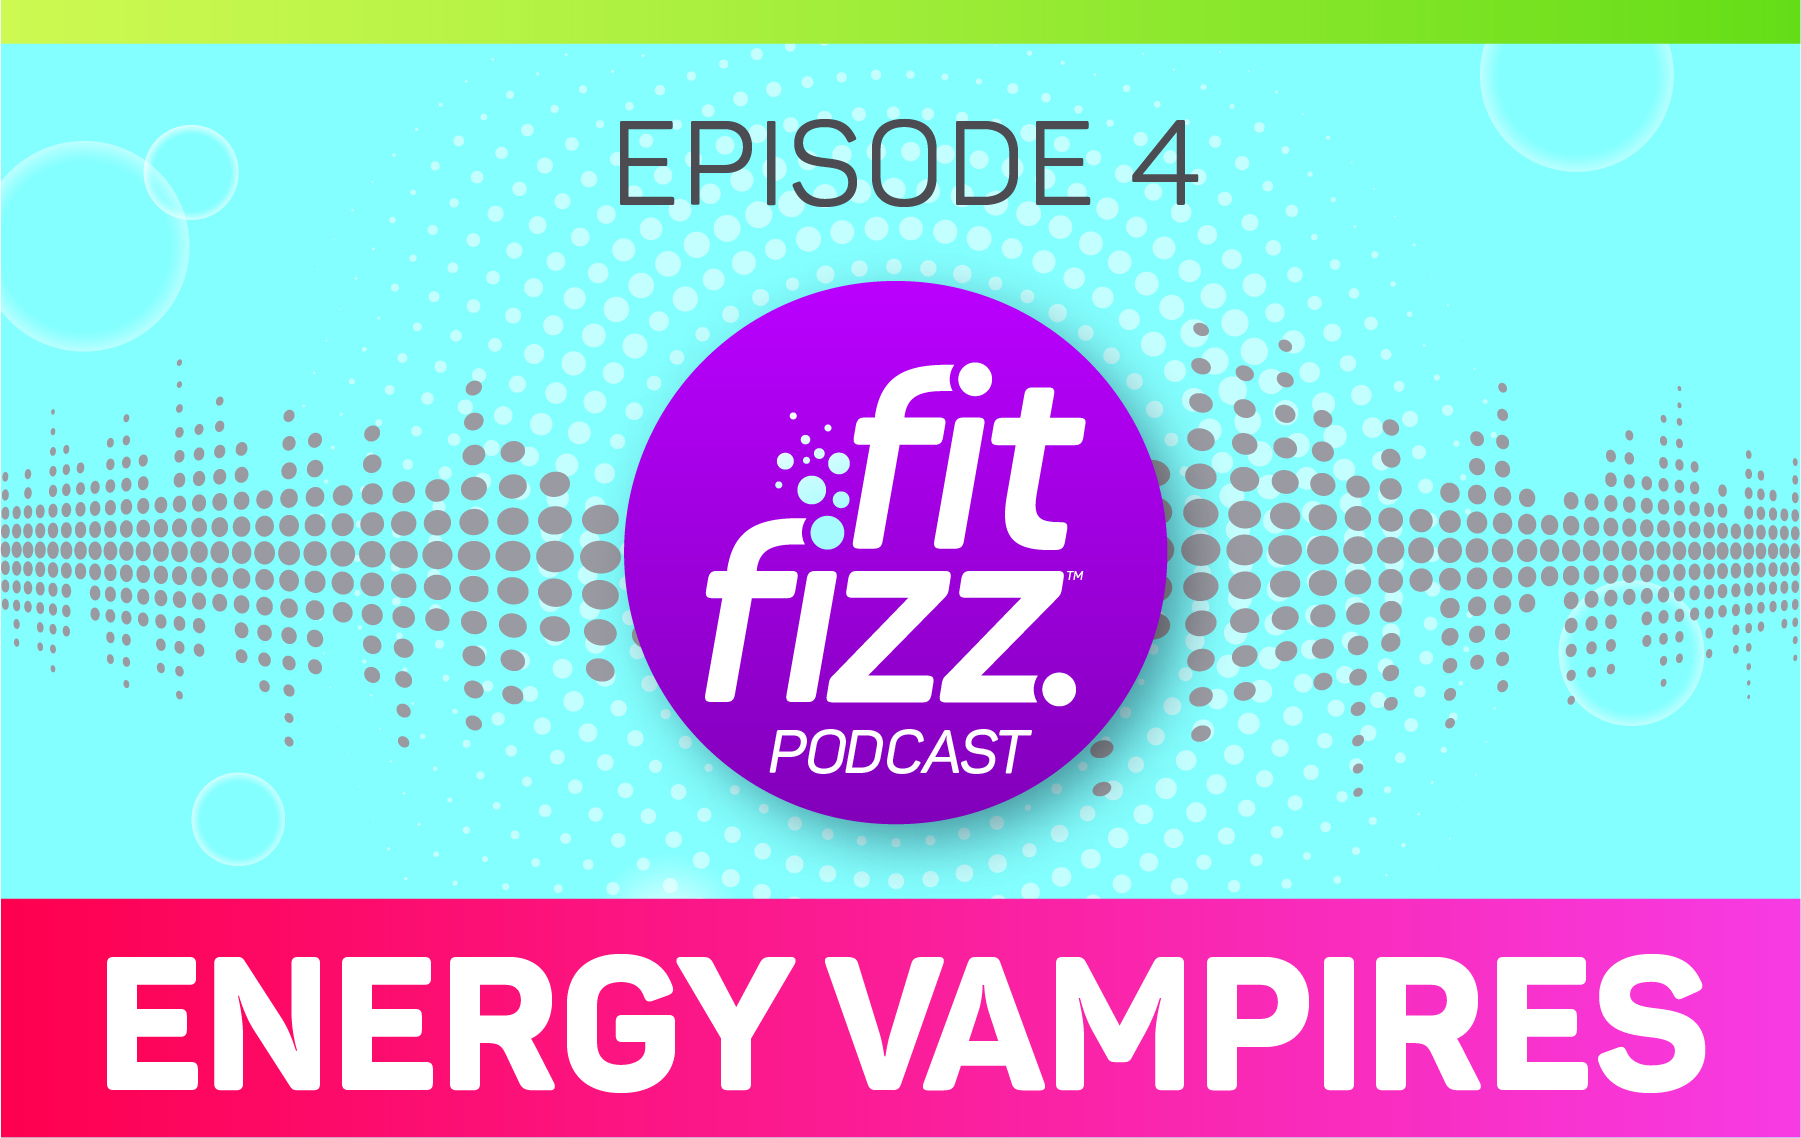 Podcast Episode 4: Energy Vampires